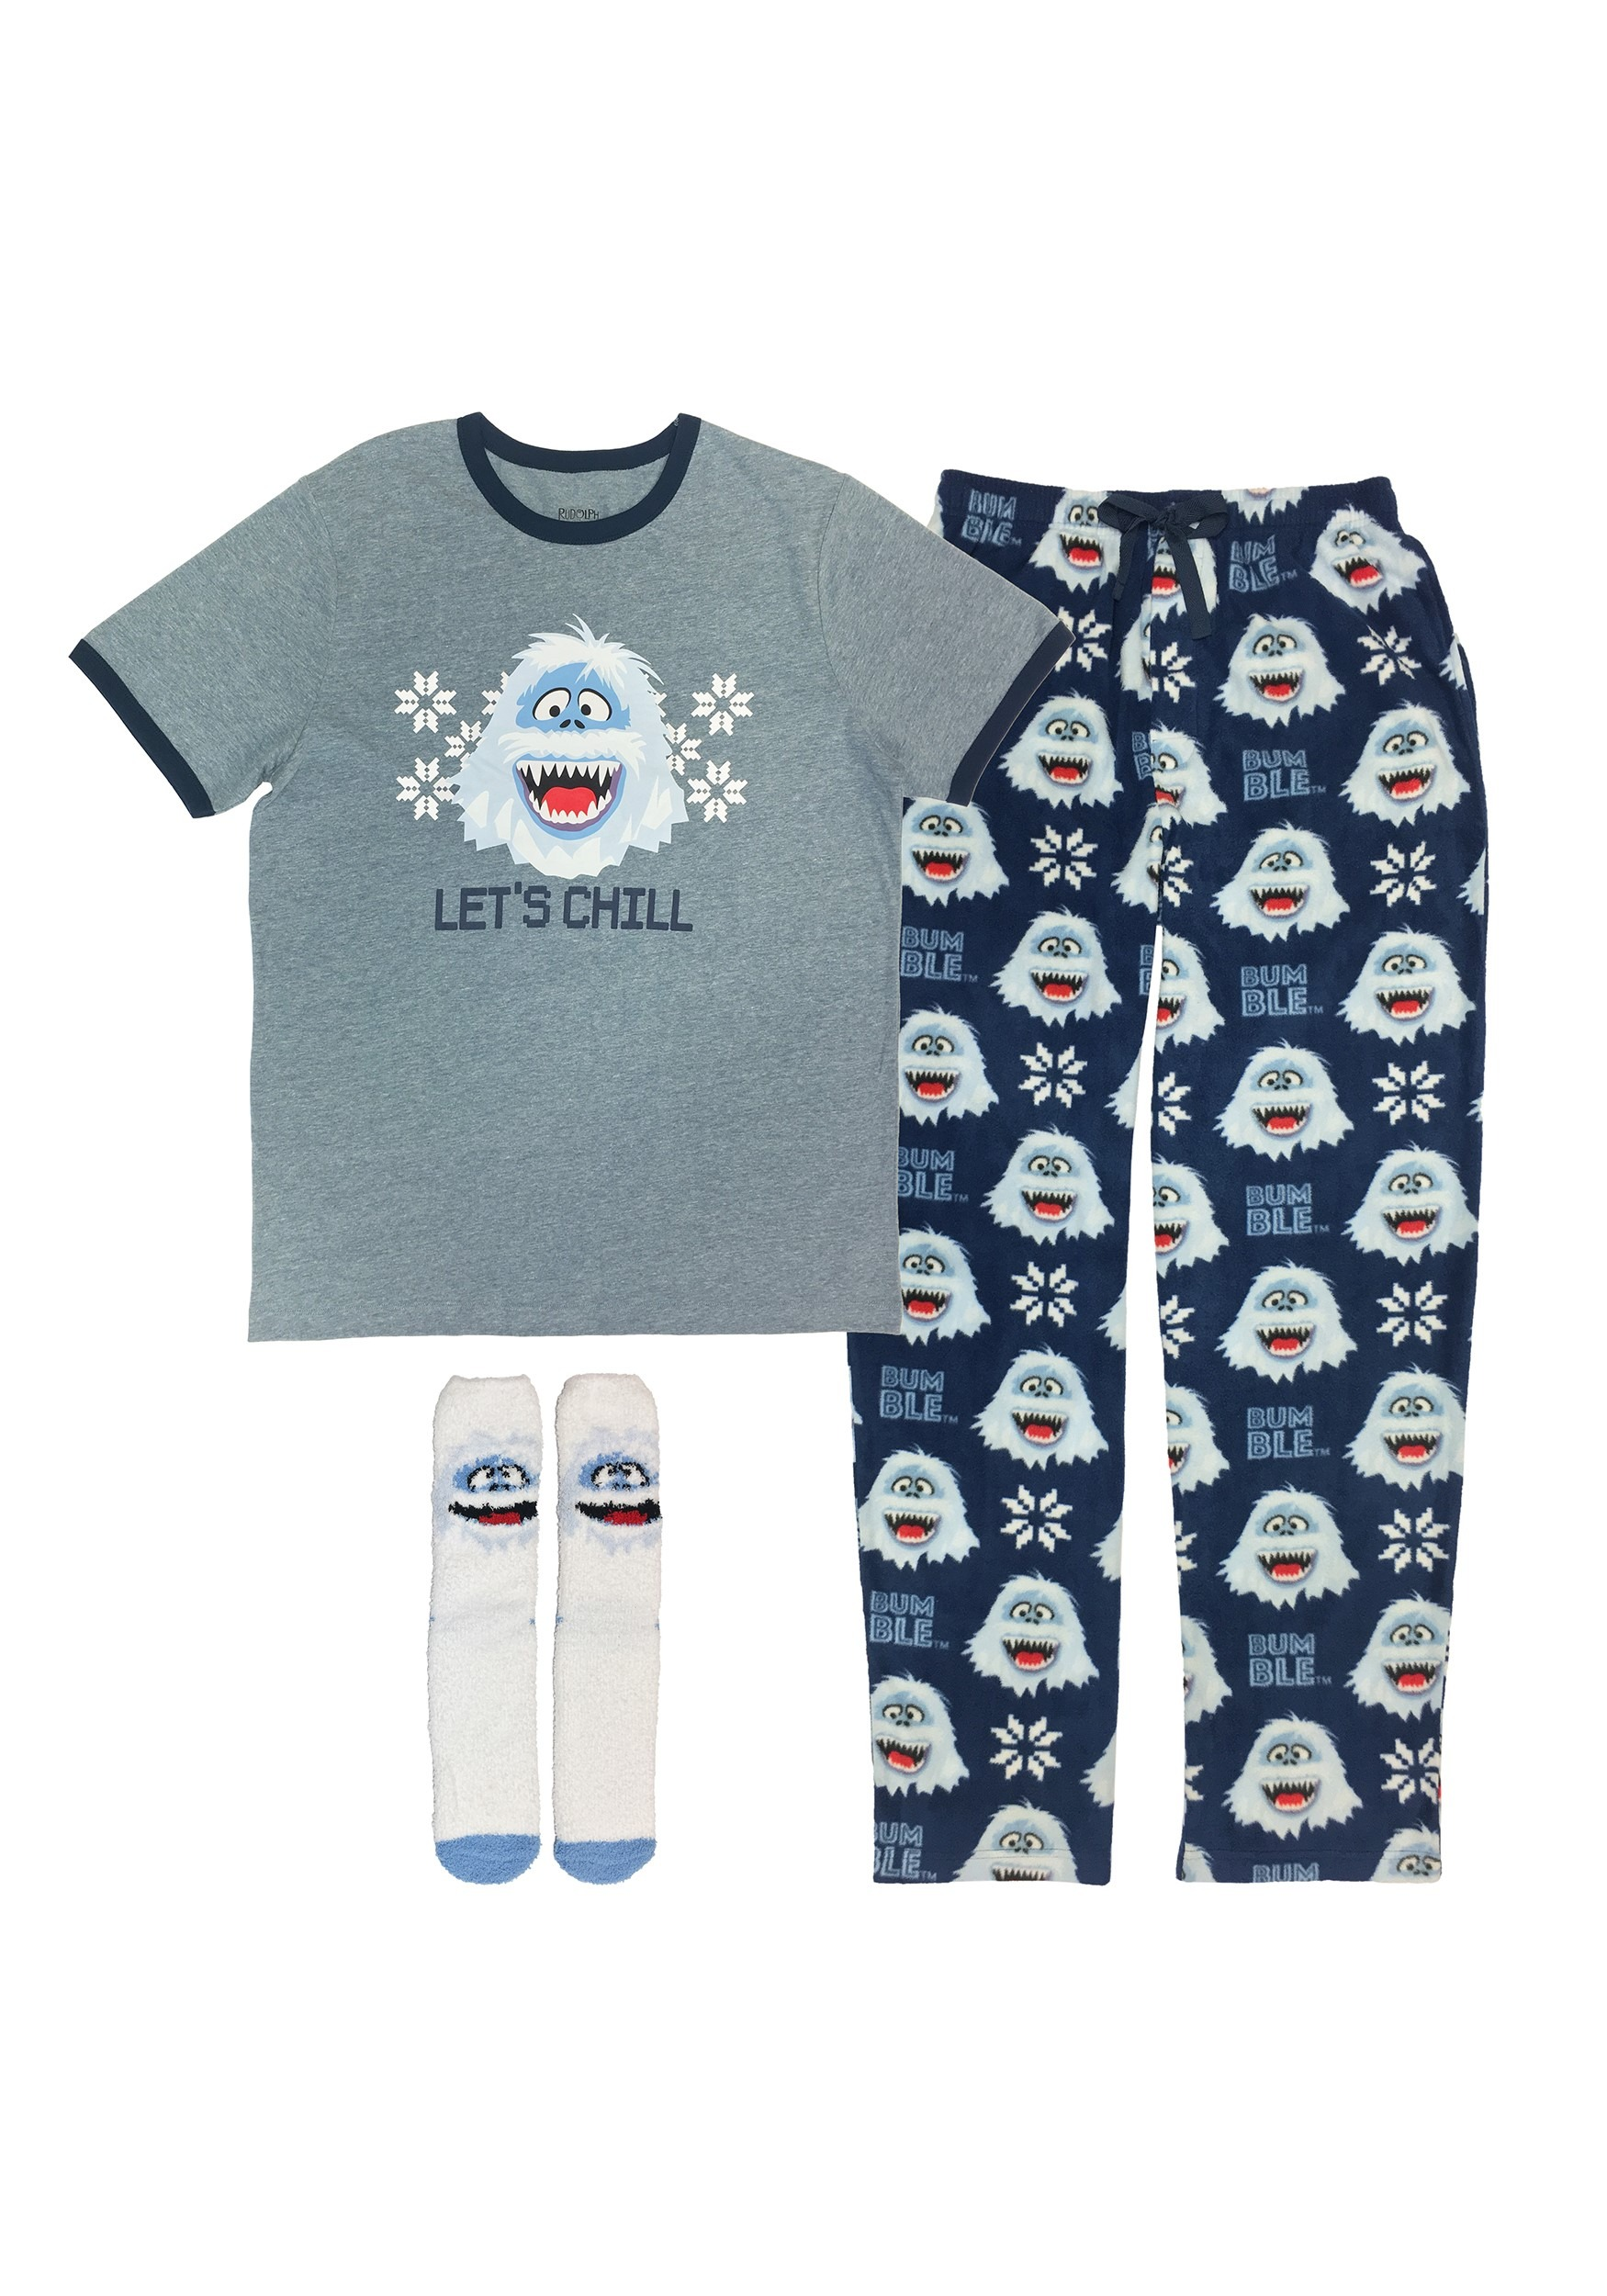 Rudolph the Red-Nosed Reindeer Bumble Loungewear Set for Men